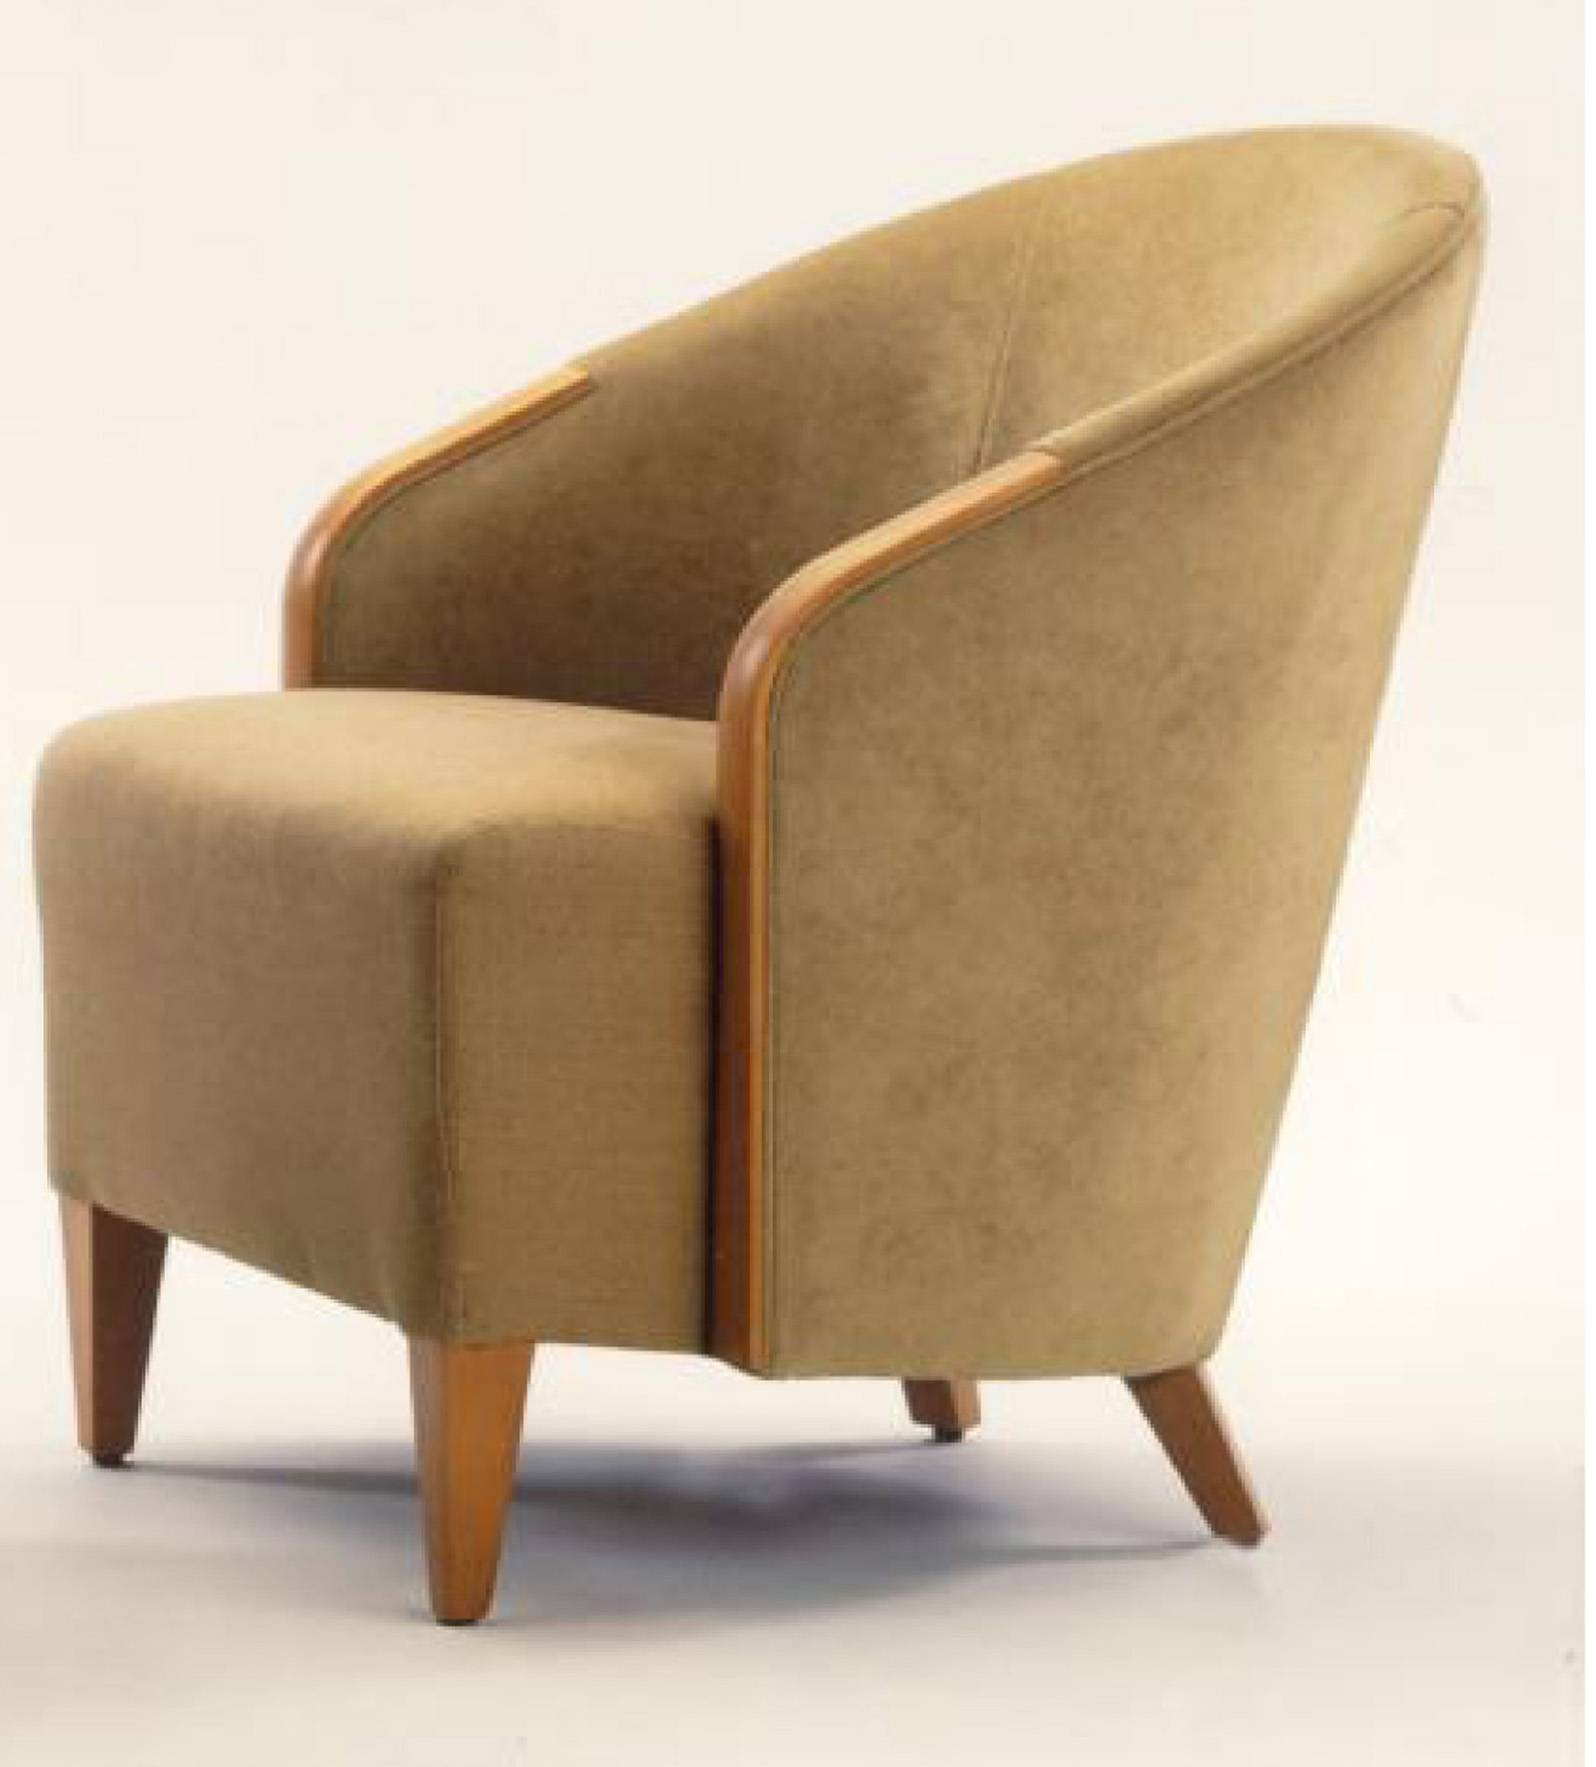 Sofas Center : Fy Single Chairs Classic Sofa Chair Logo Slipper intended for Single Sofa Chairs (Image 24 of 30)